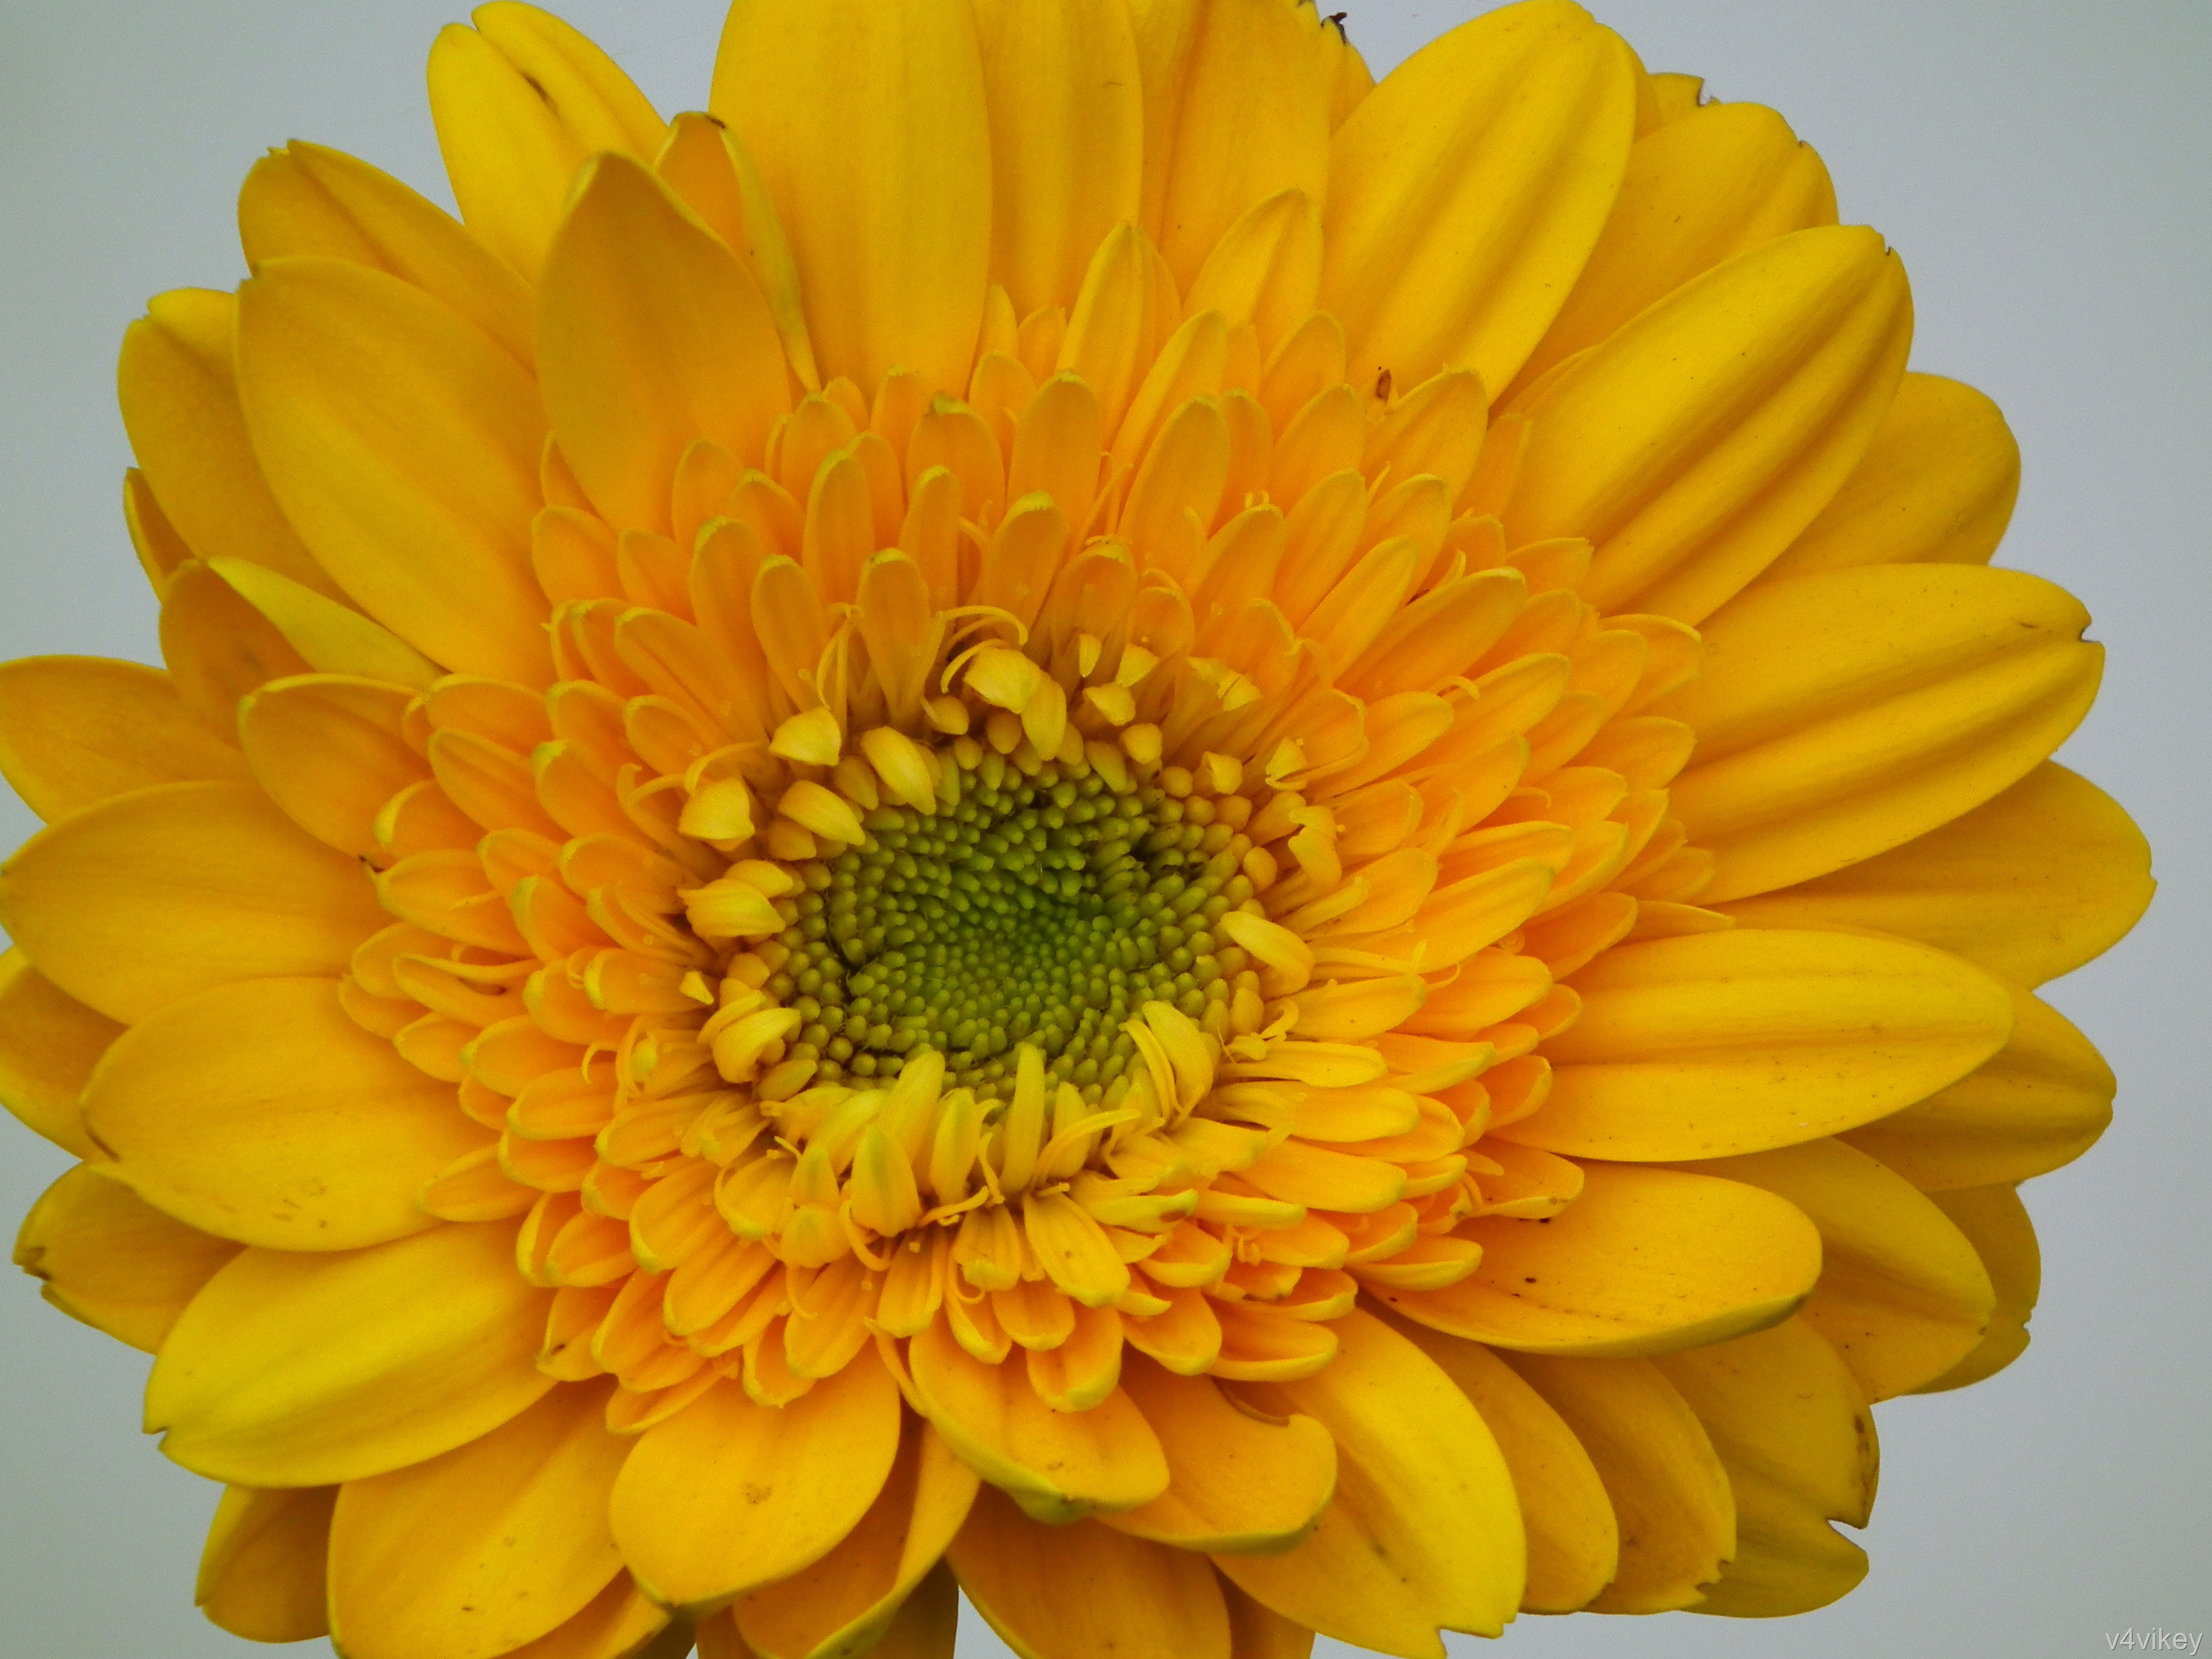 Daisies are also a Classic Symbol of Beauty